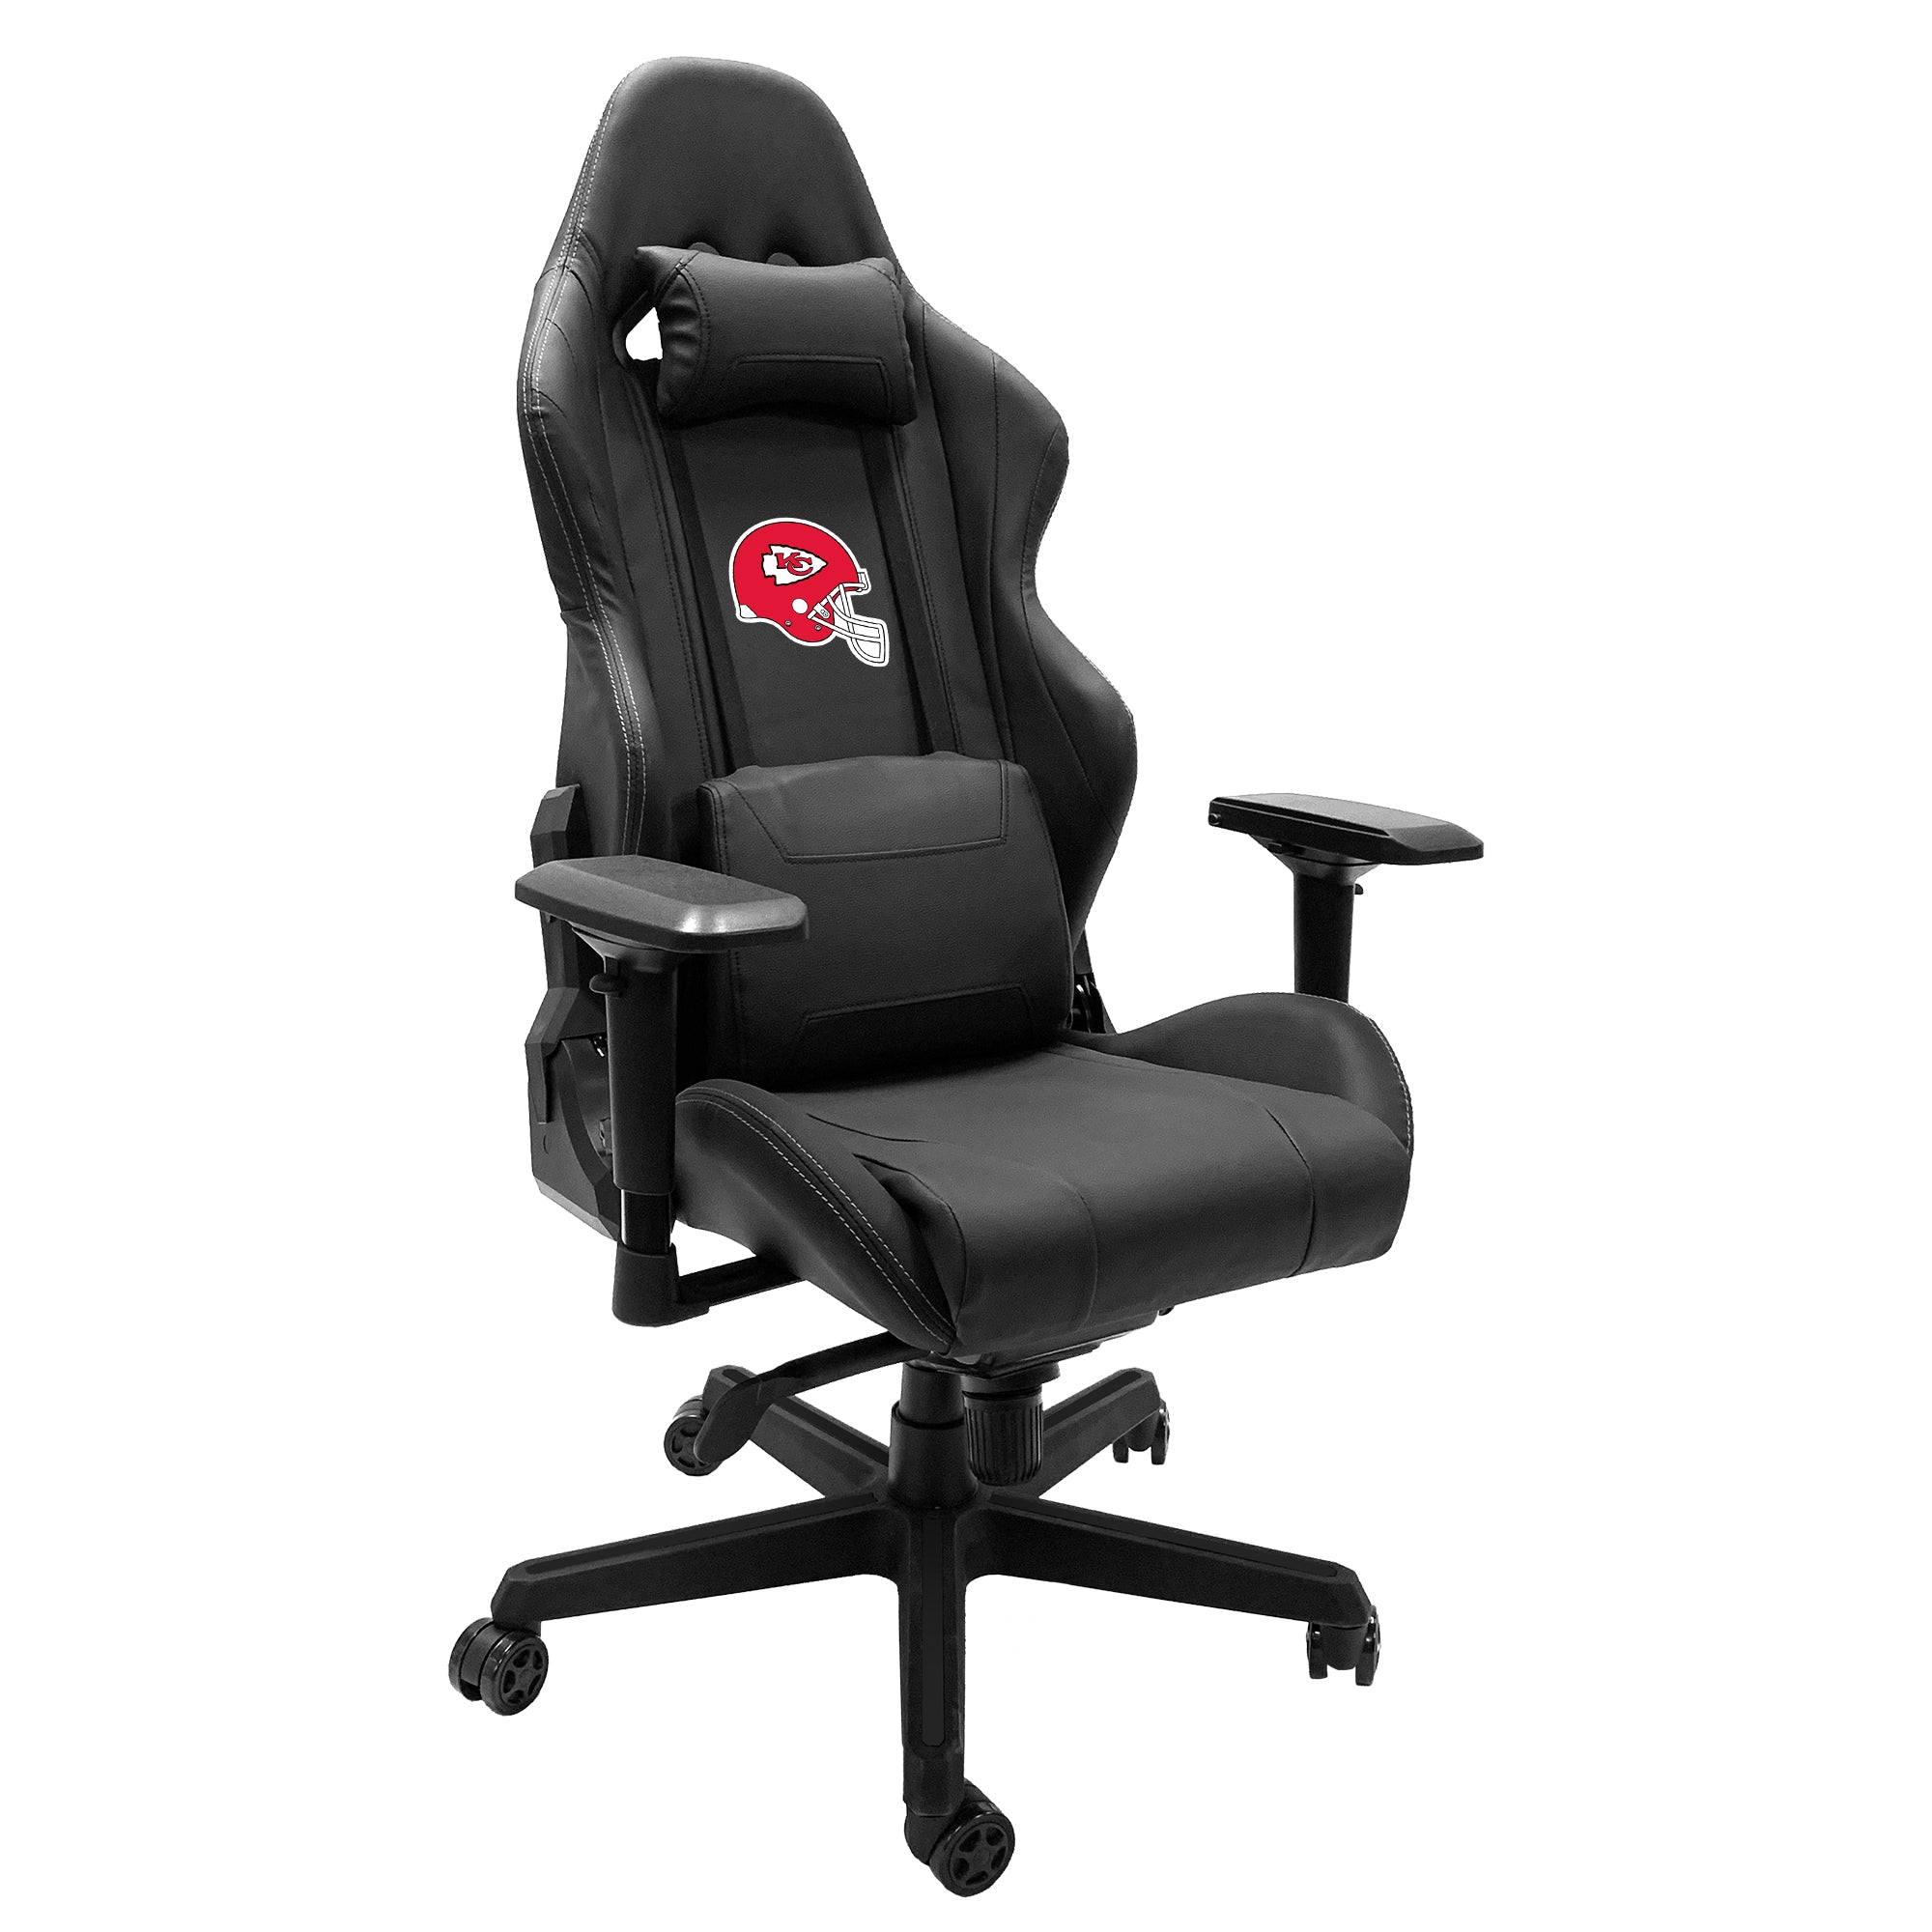 Xpression Gaming Chair with  Kansas City Chiefs Helmet Logo